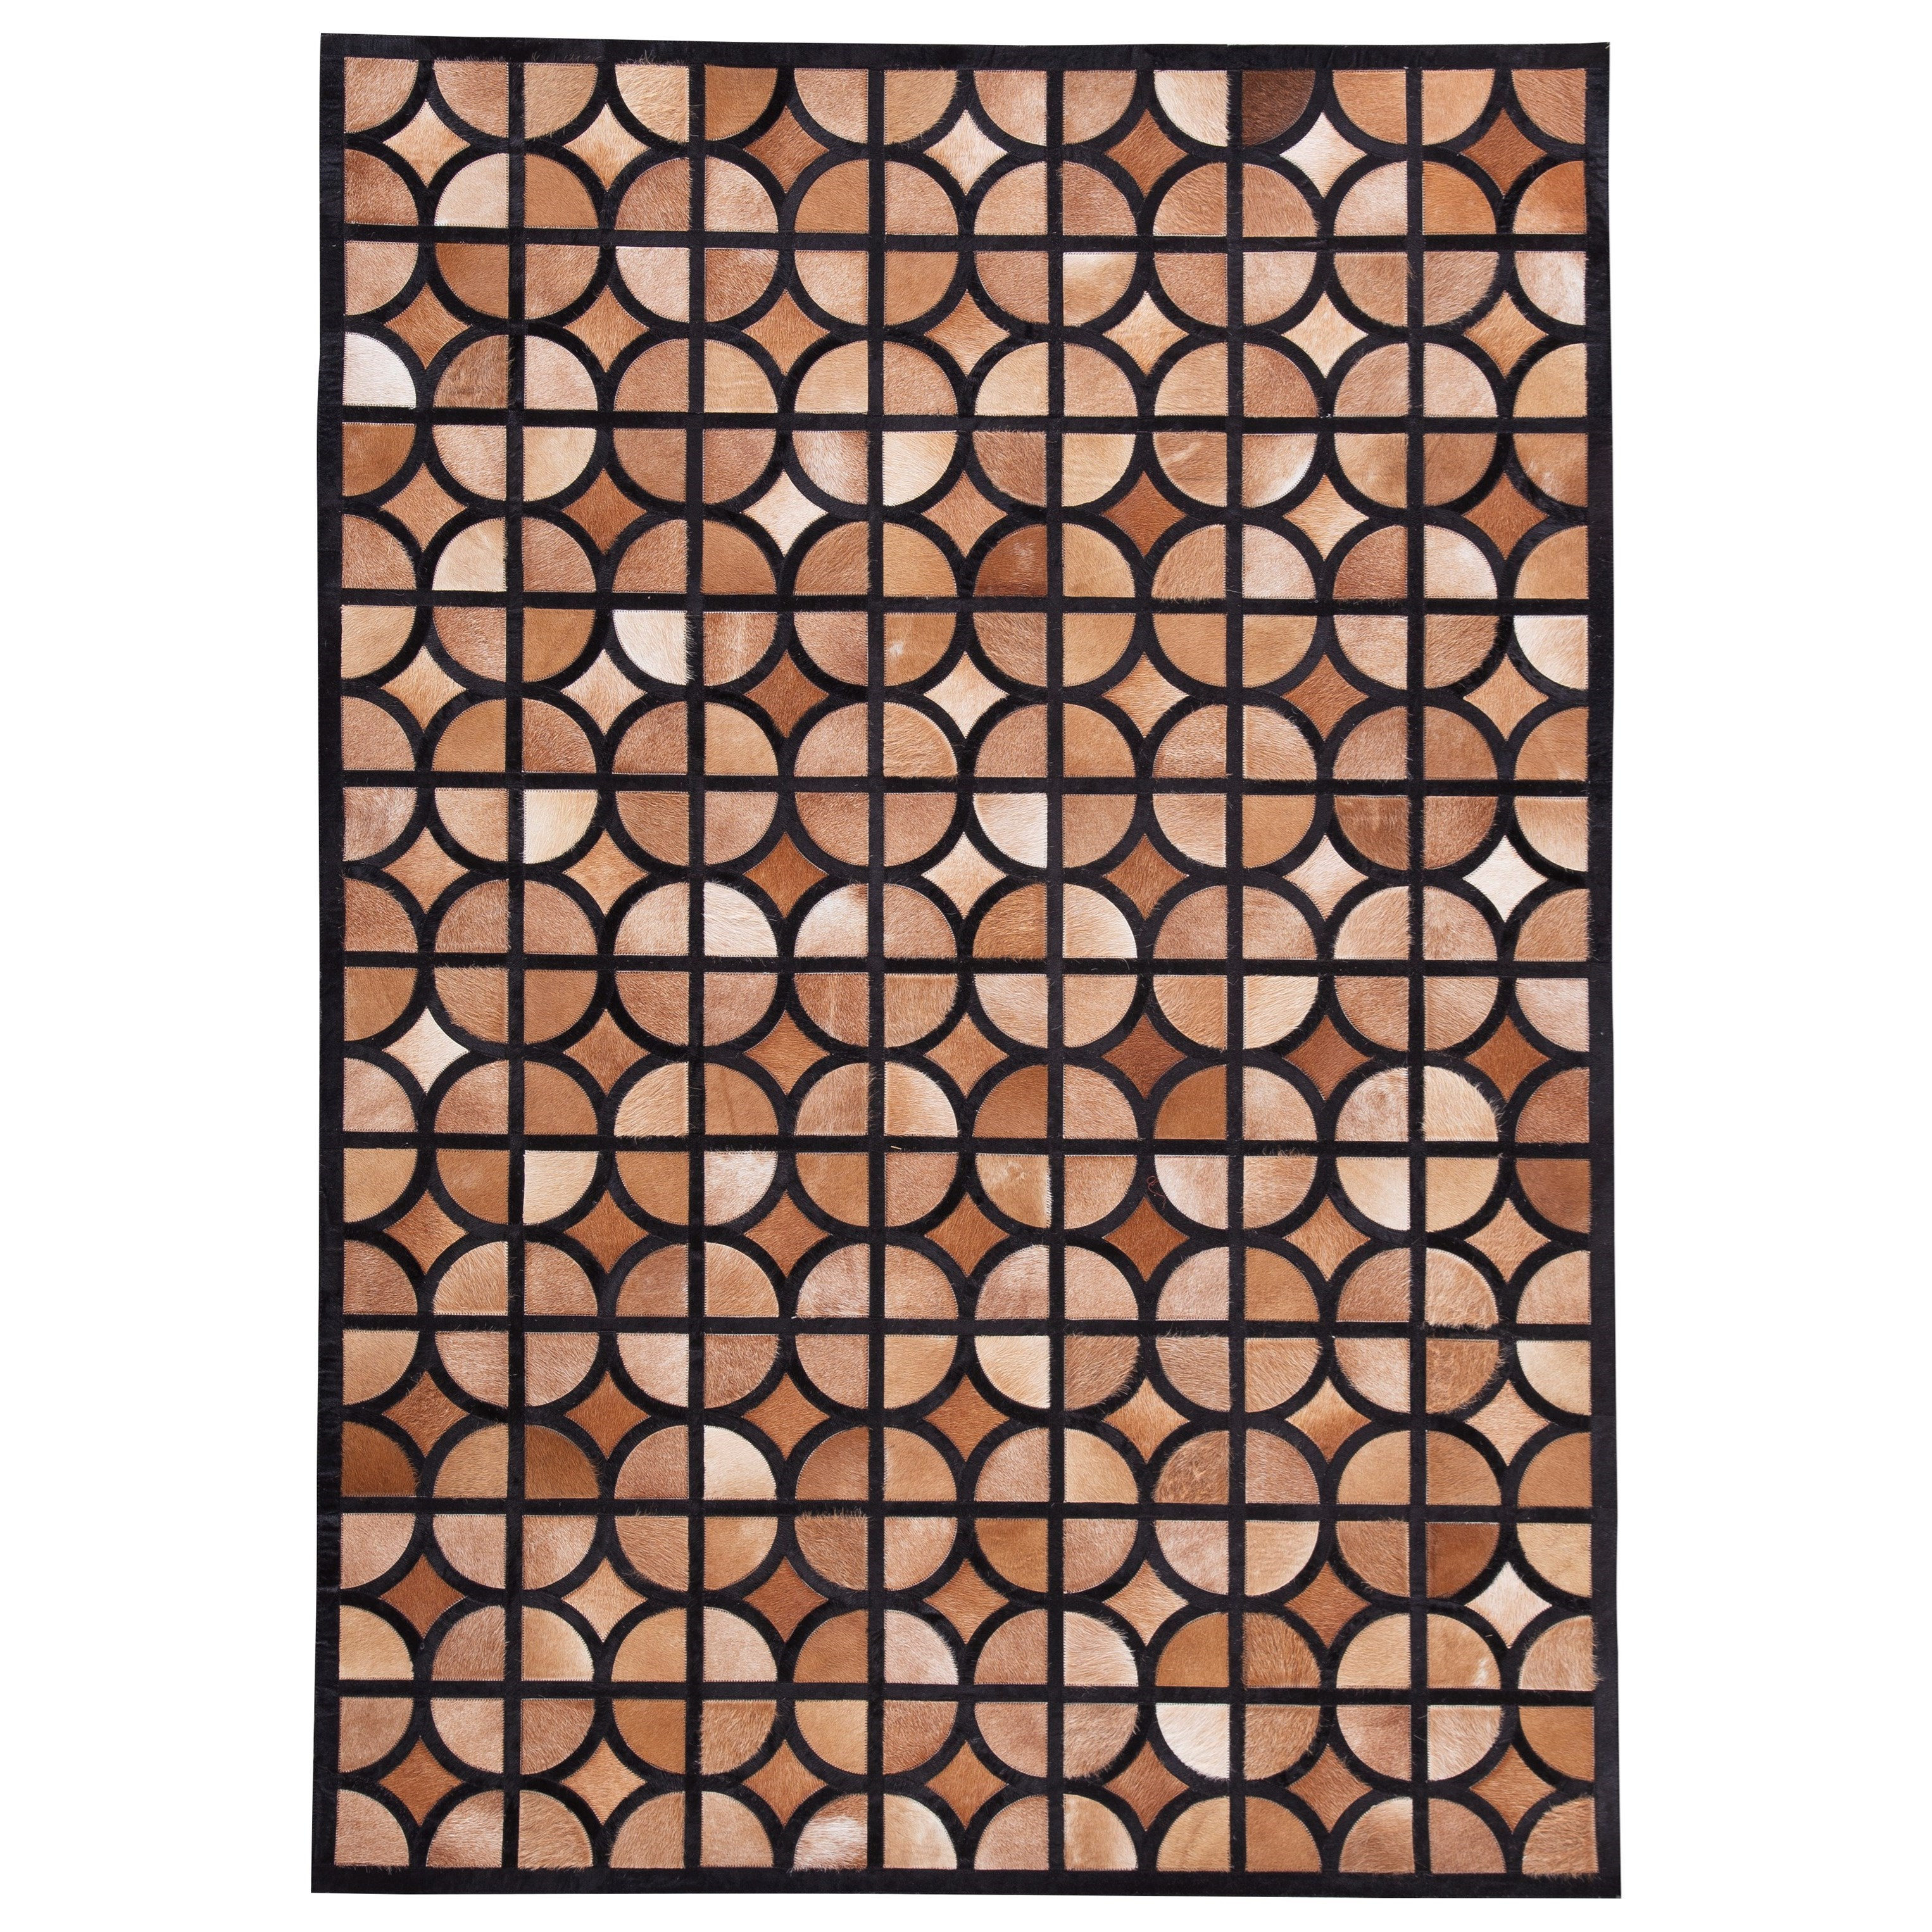 Contemporary Area Rugs Jingjin Black/Brown Large Rug by Signature Design by Ashley at Furniture Barn